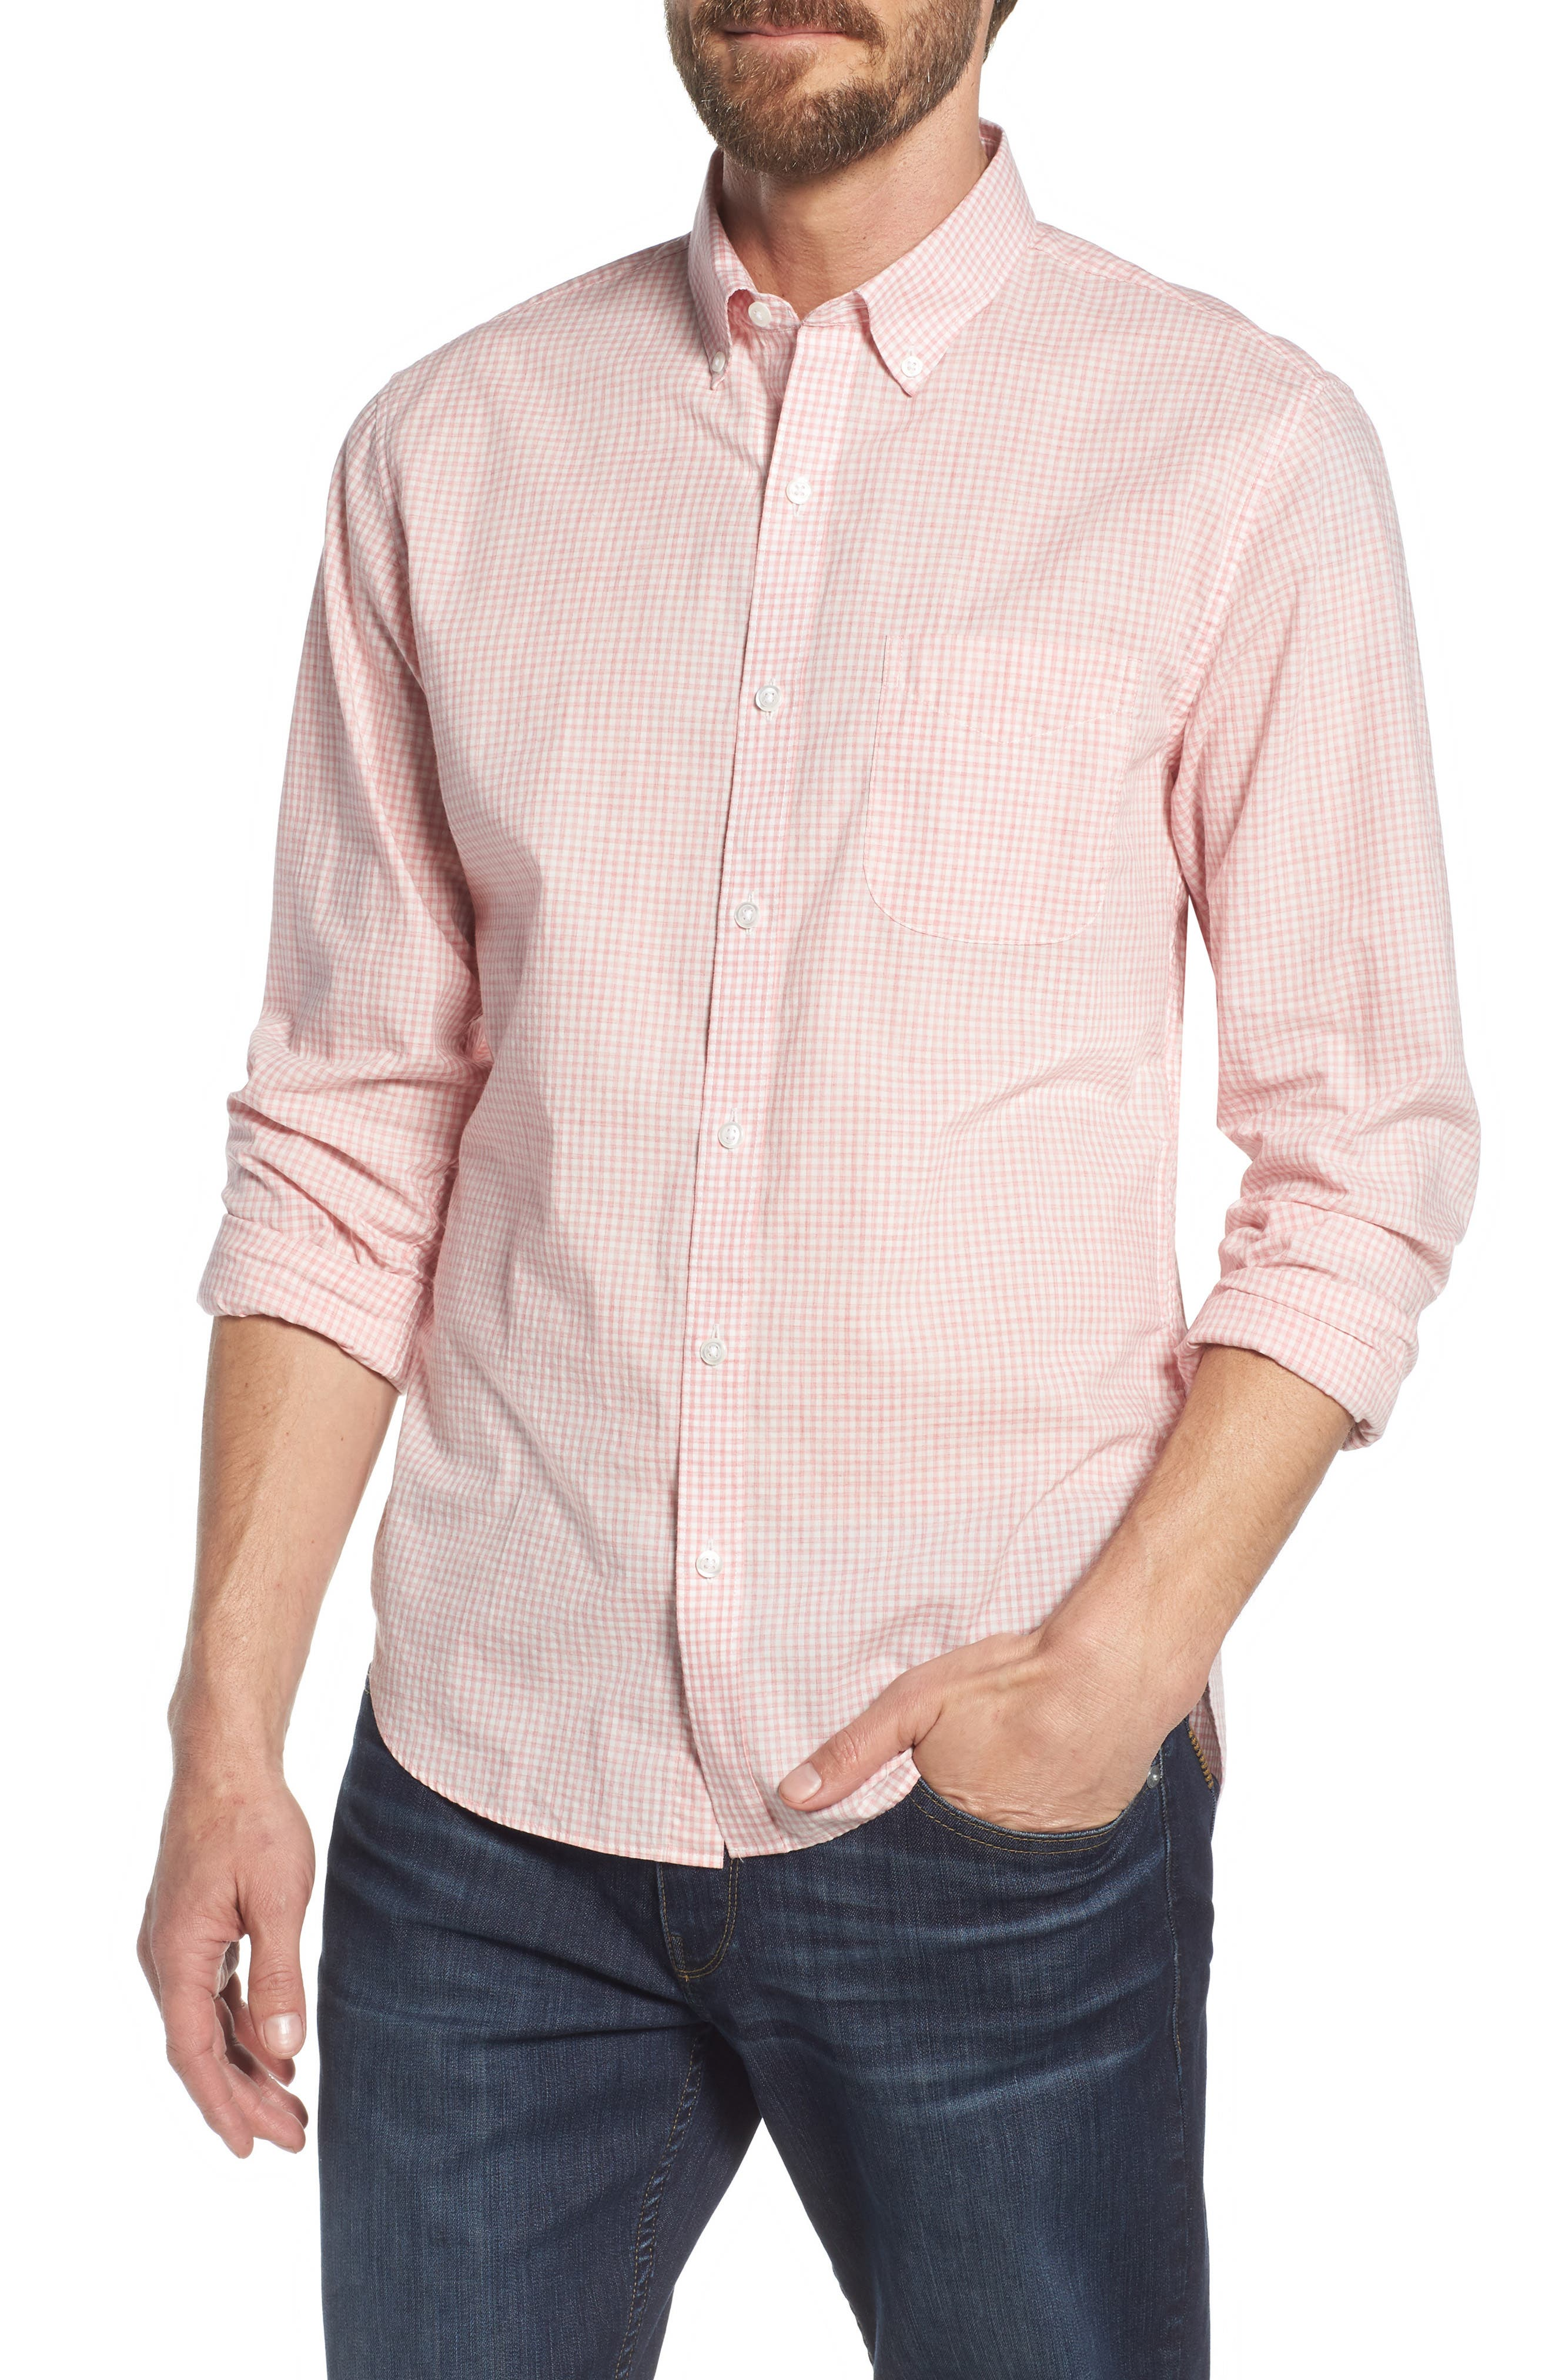 Summerweight Slim Fit Check Sport Shirt,                             Main thumbnail 1, color,                             Mini Gingham - Heather Rose